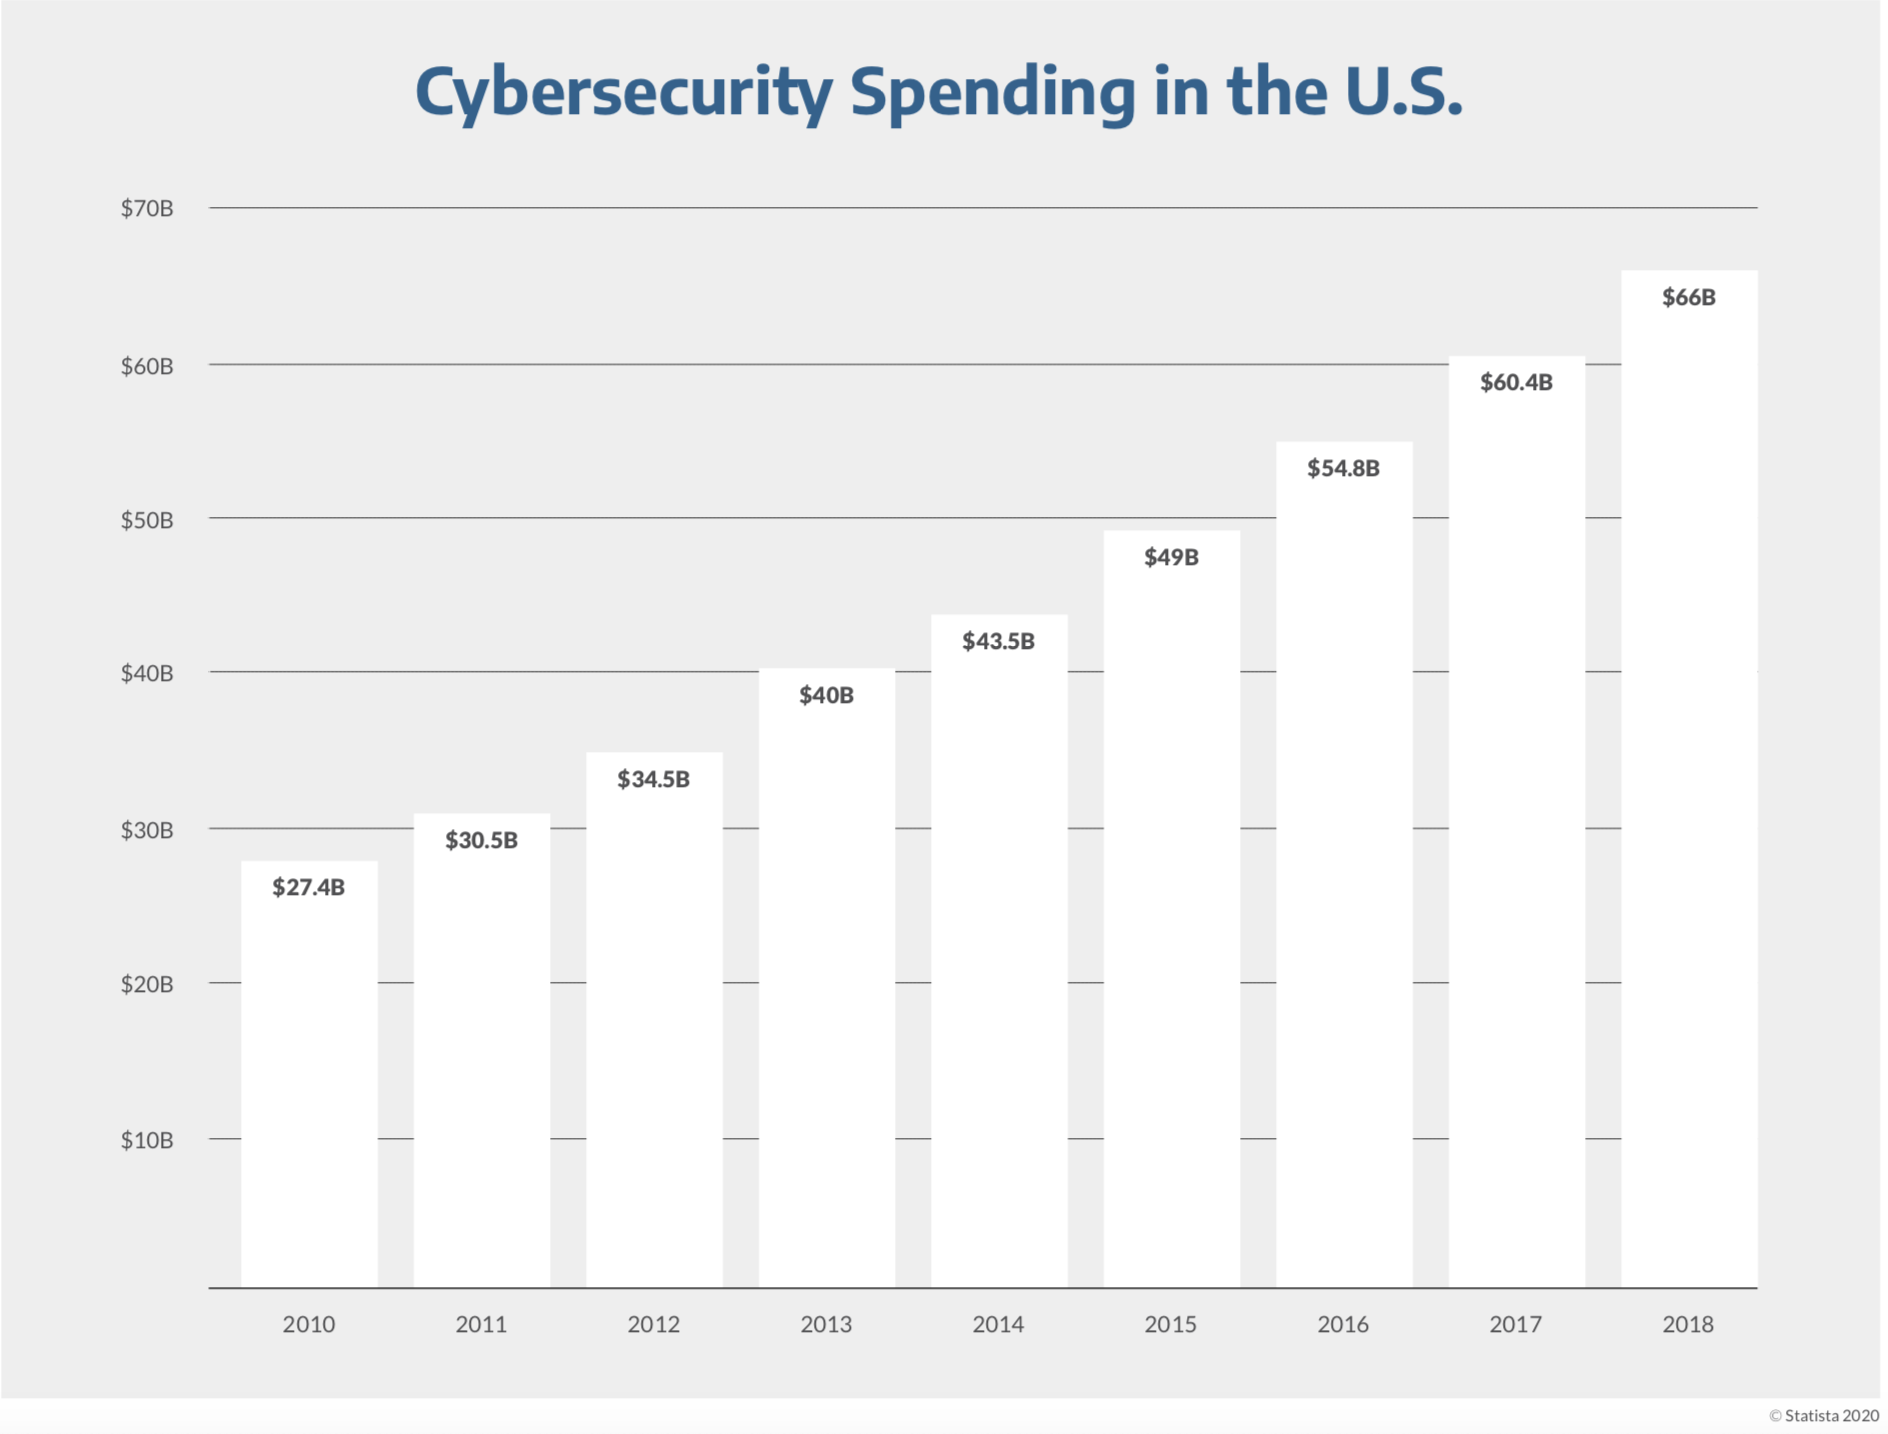 Cybersecurity spending in the U.S. graph. $27.4 billion in 2010, $66 billion in 2019